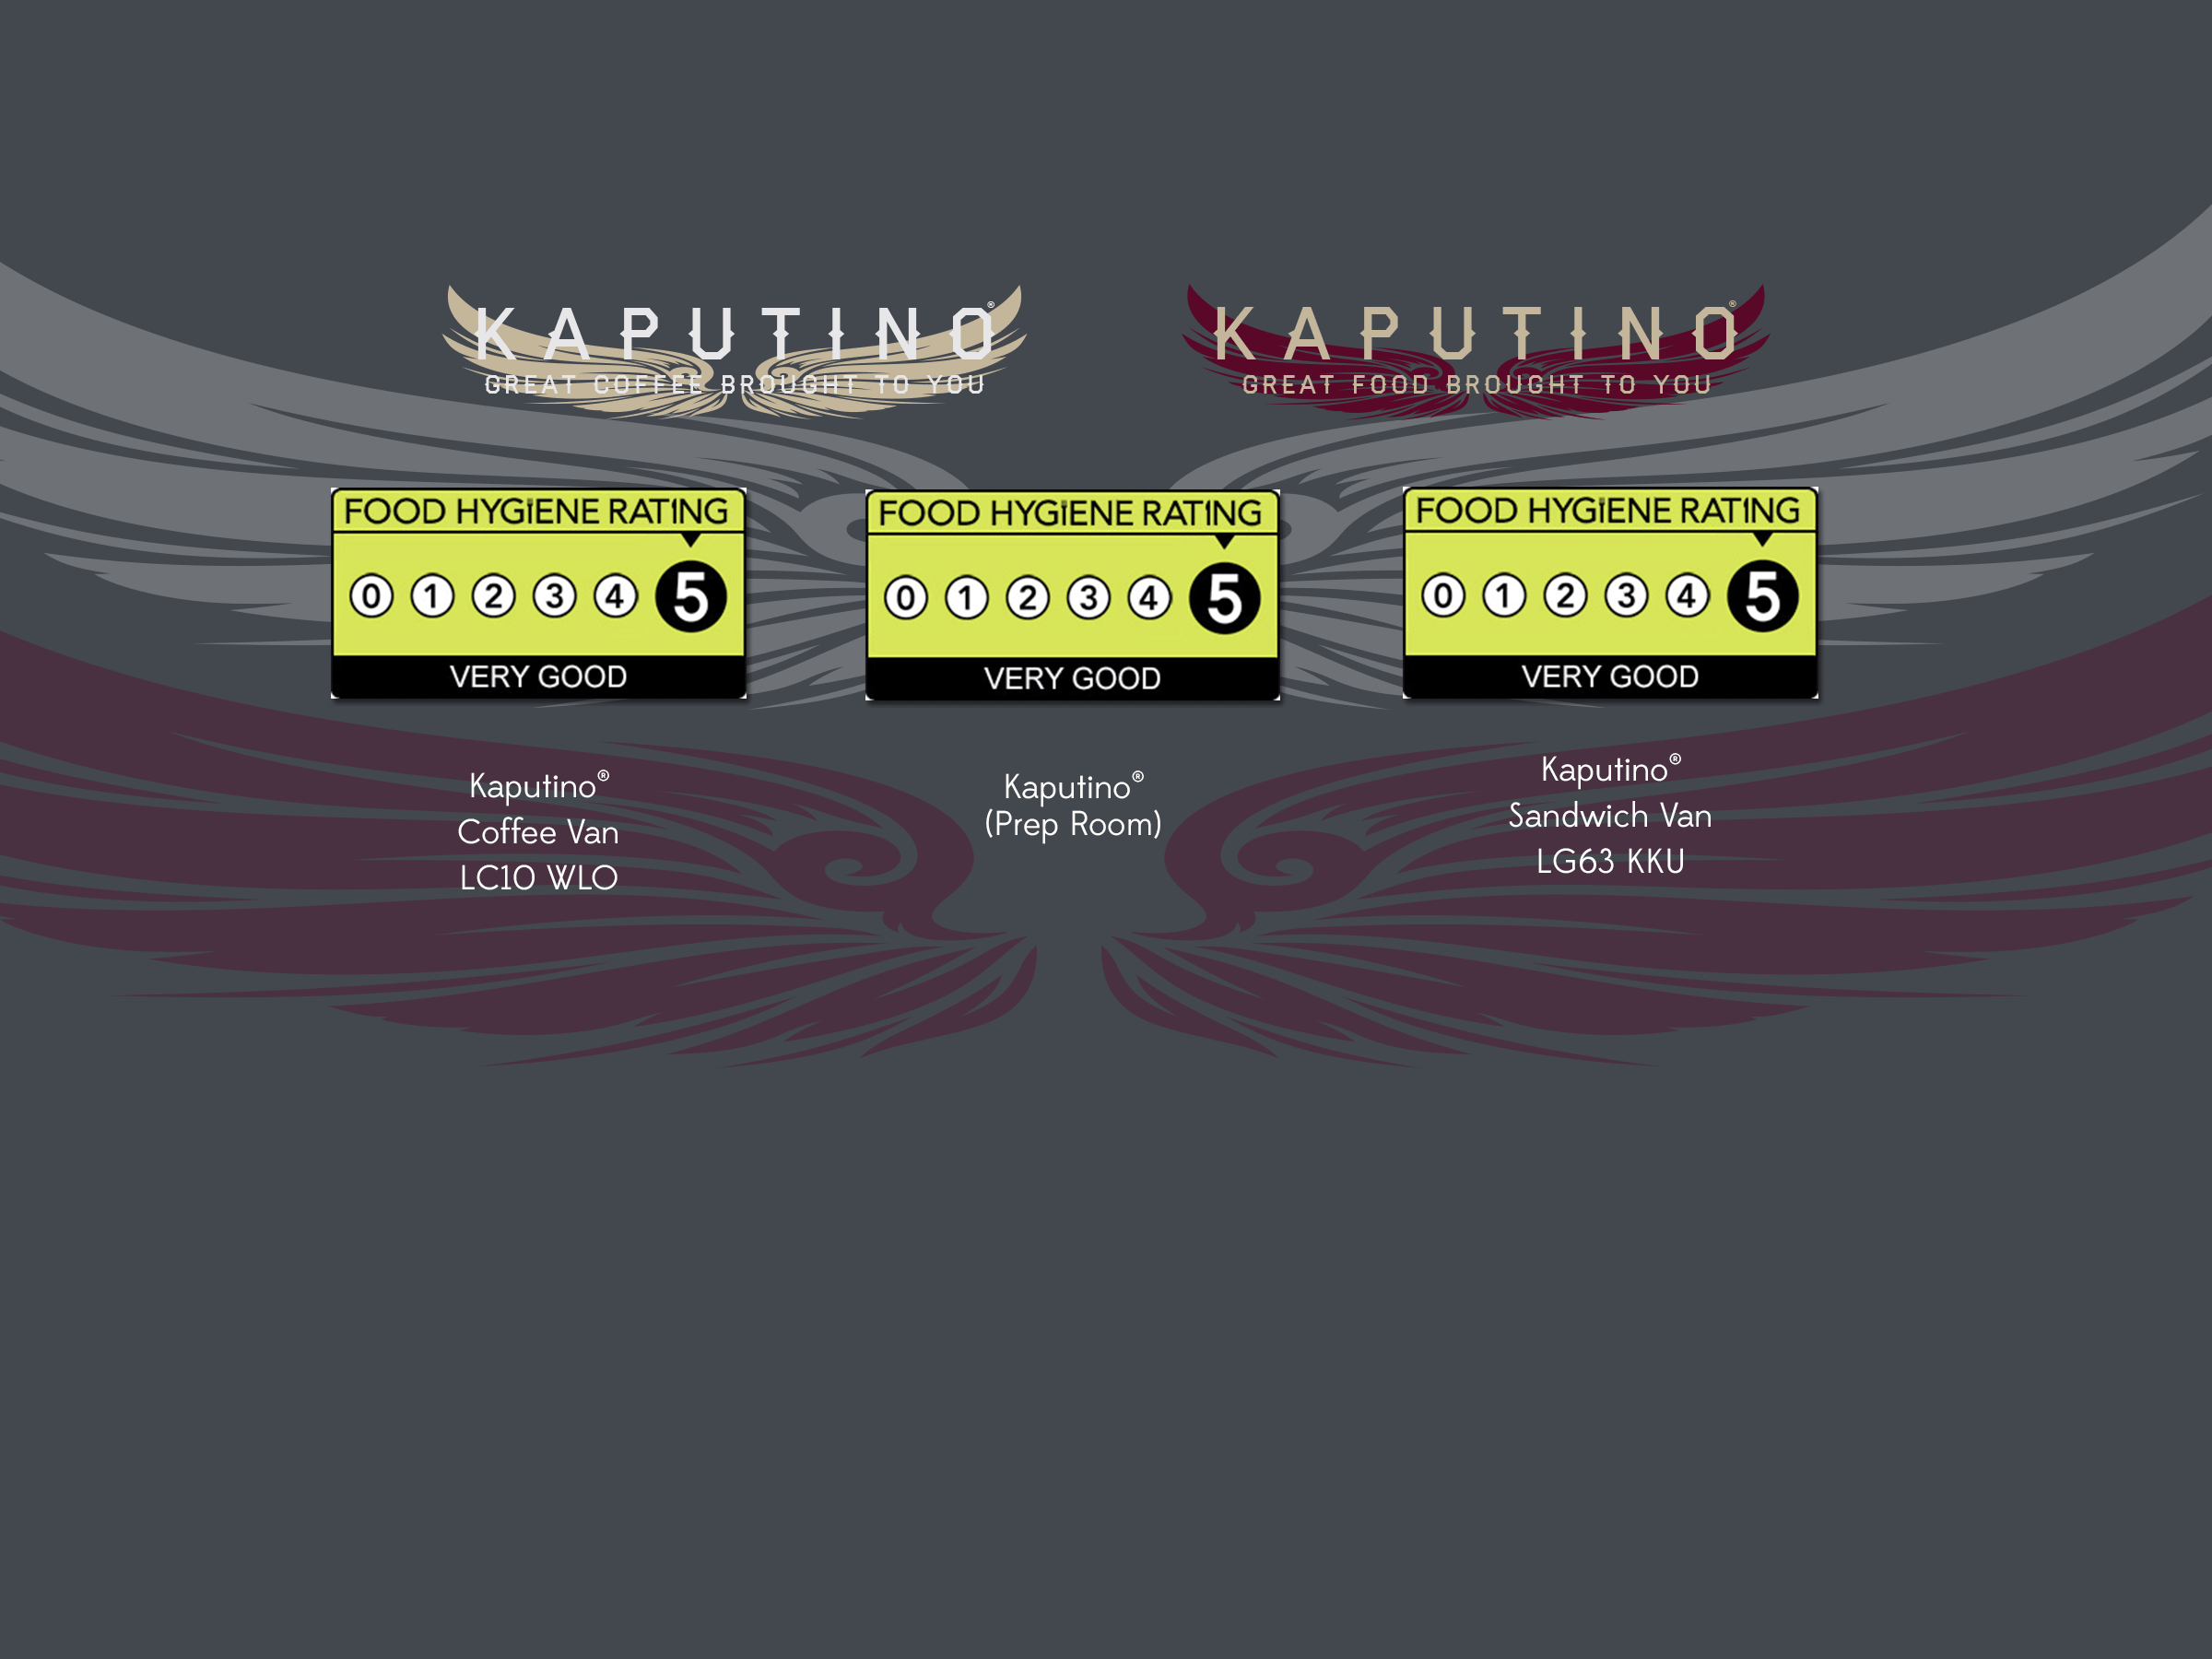 food-hygiene-ratings-for-kaputino